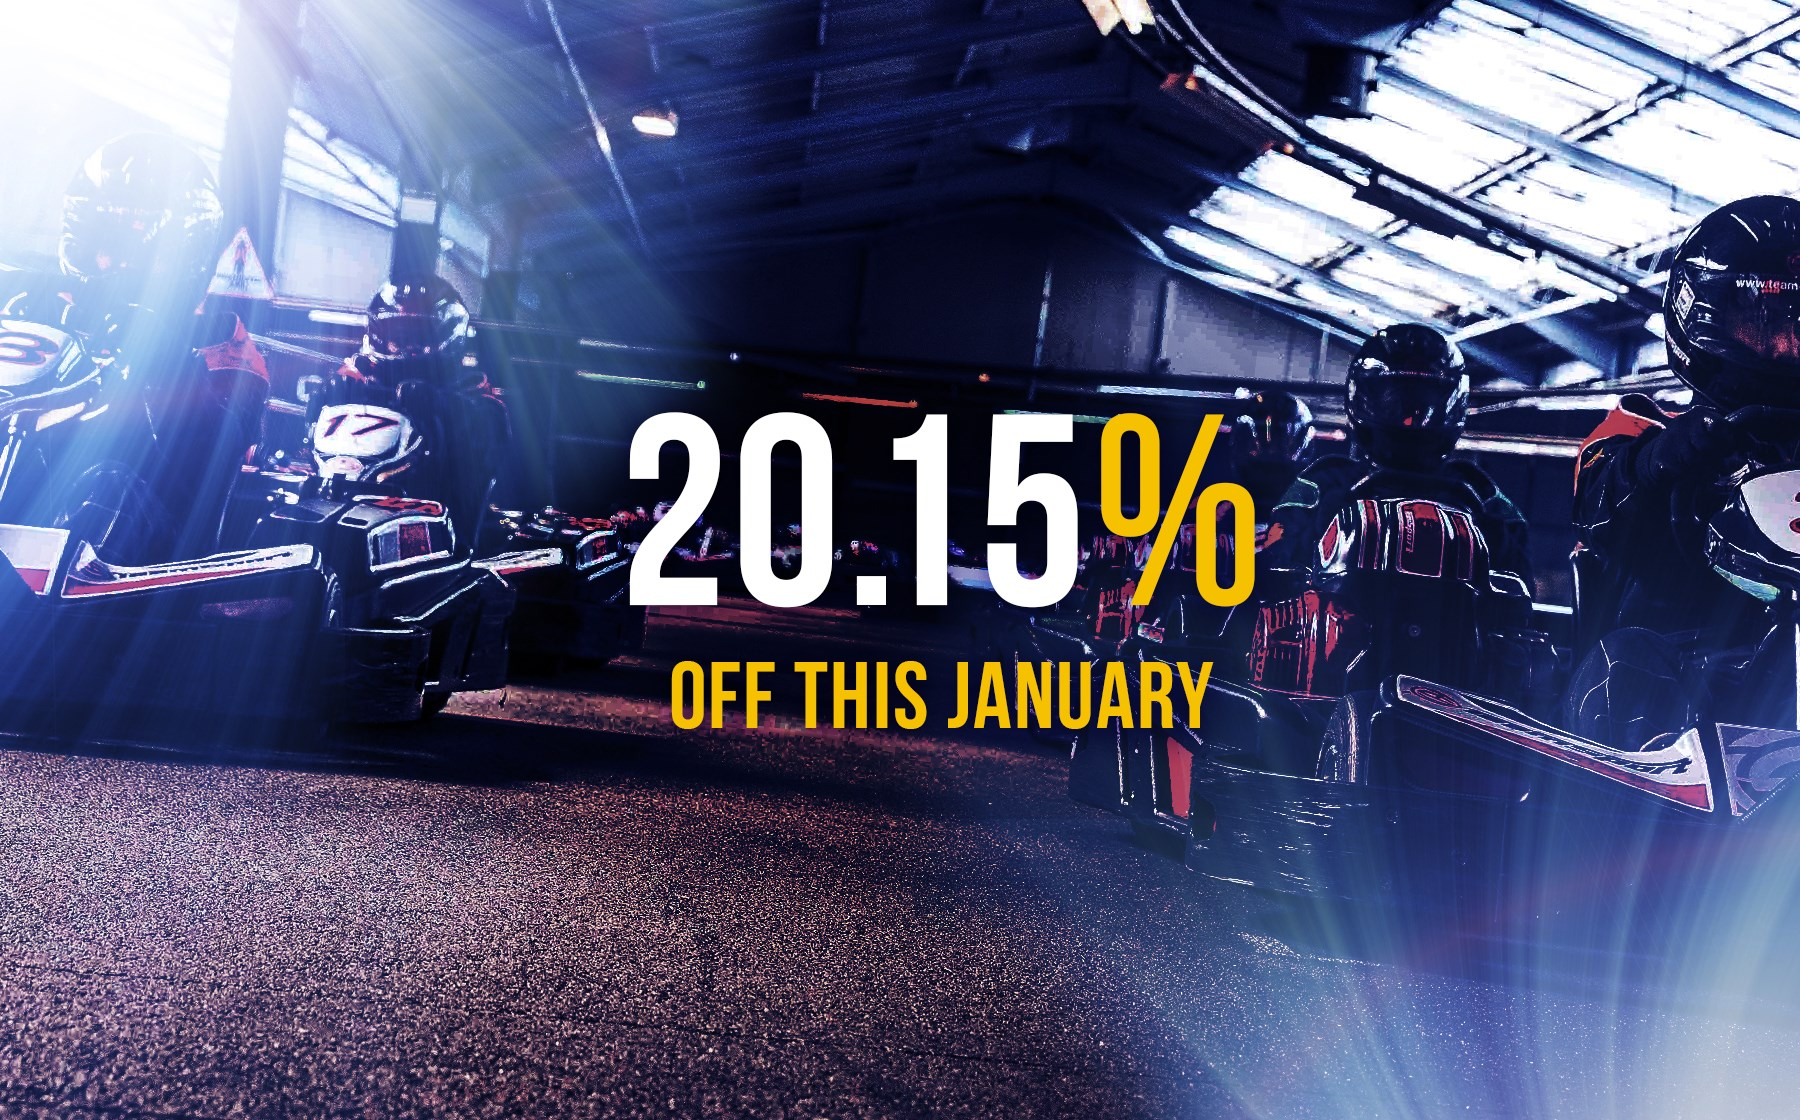 GO KARTING OFFERS - 20.15% Off Jan Events